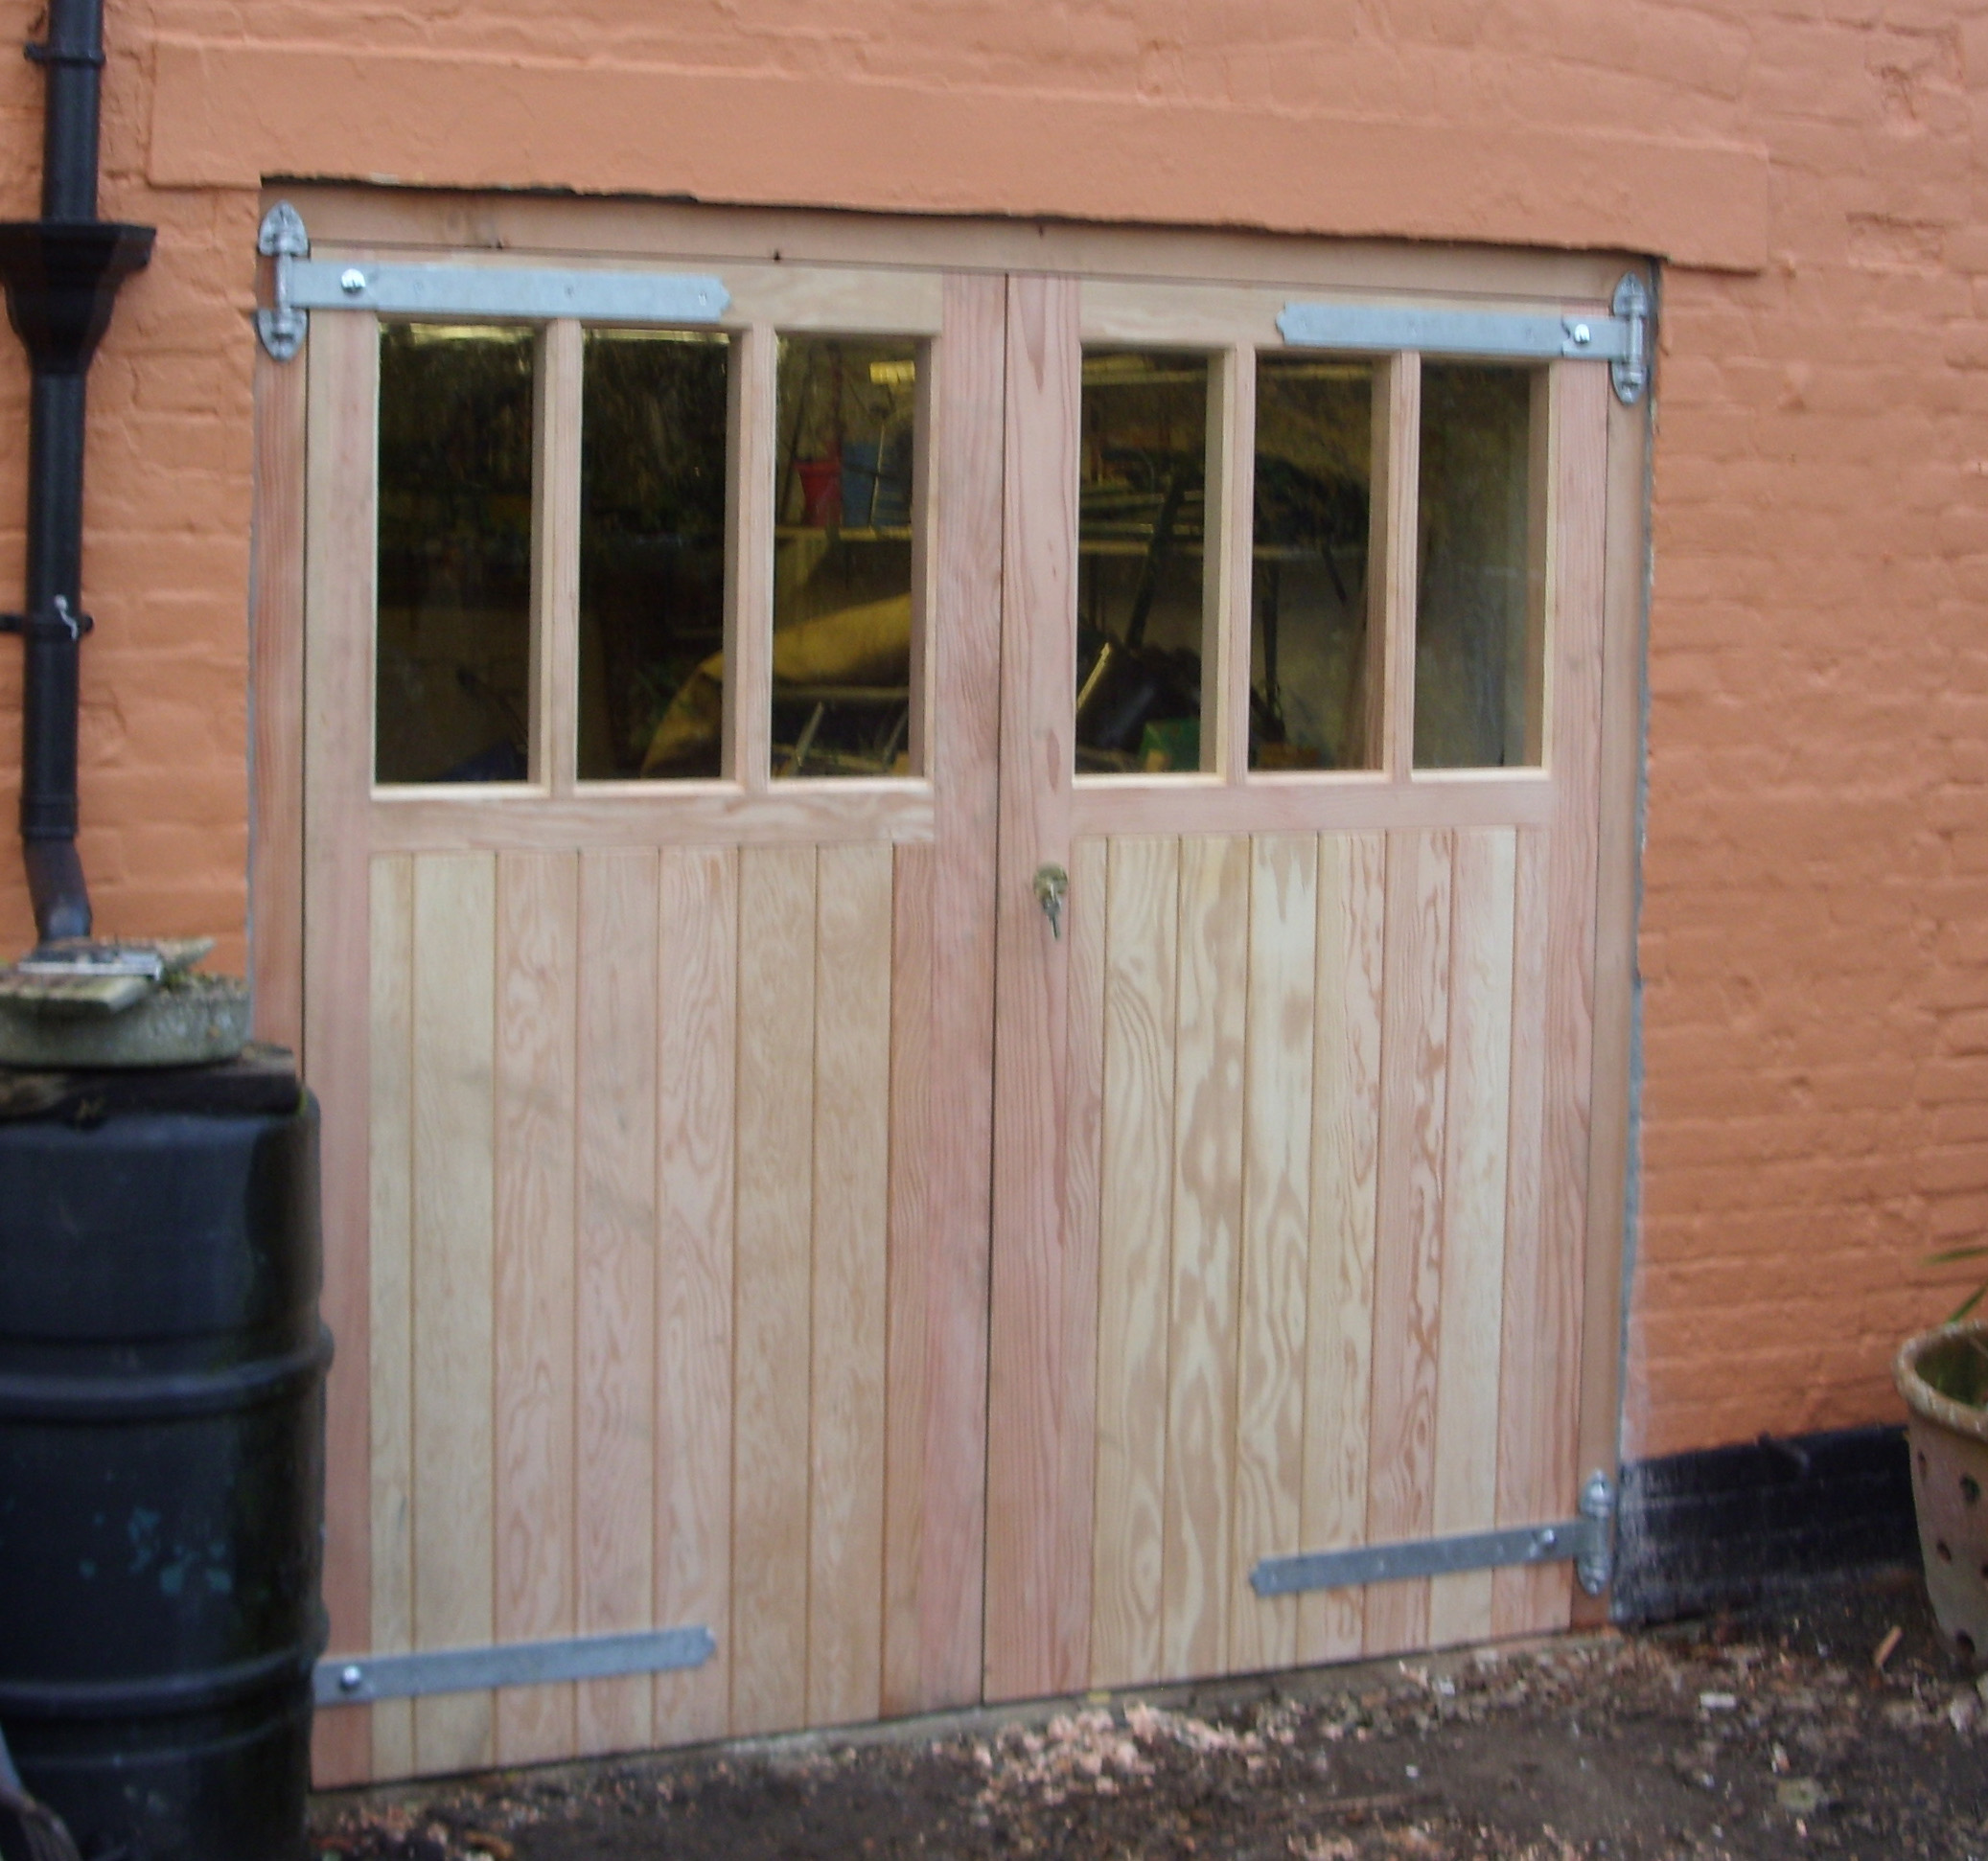 Garage doors with 6 panes